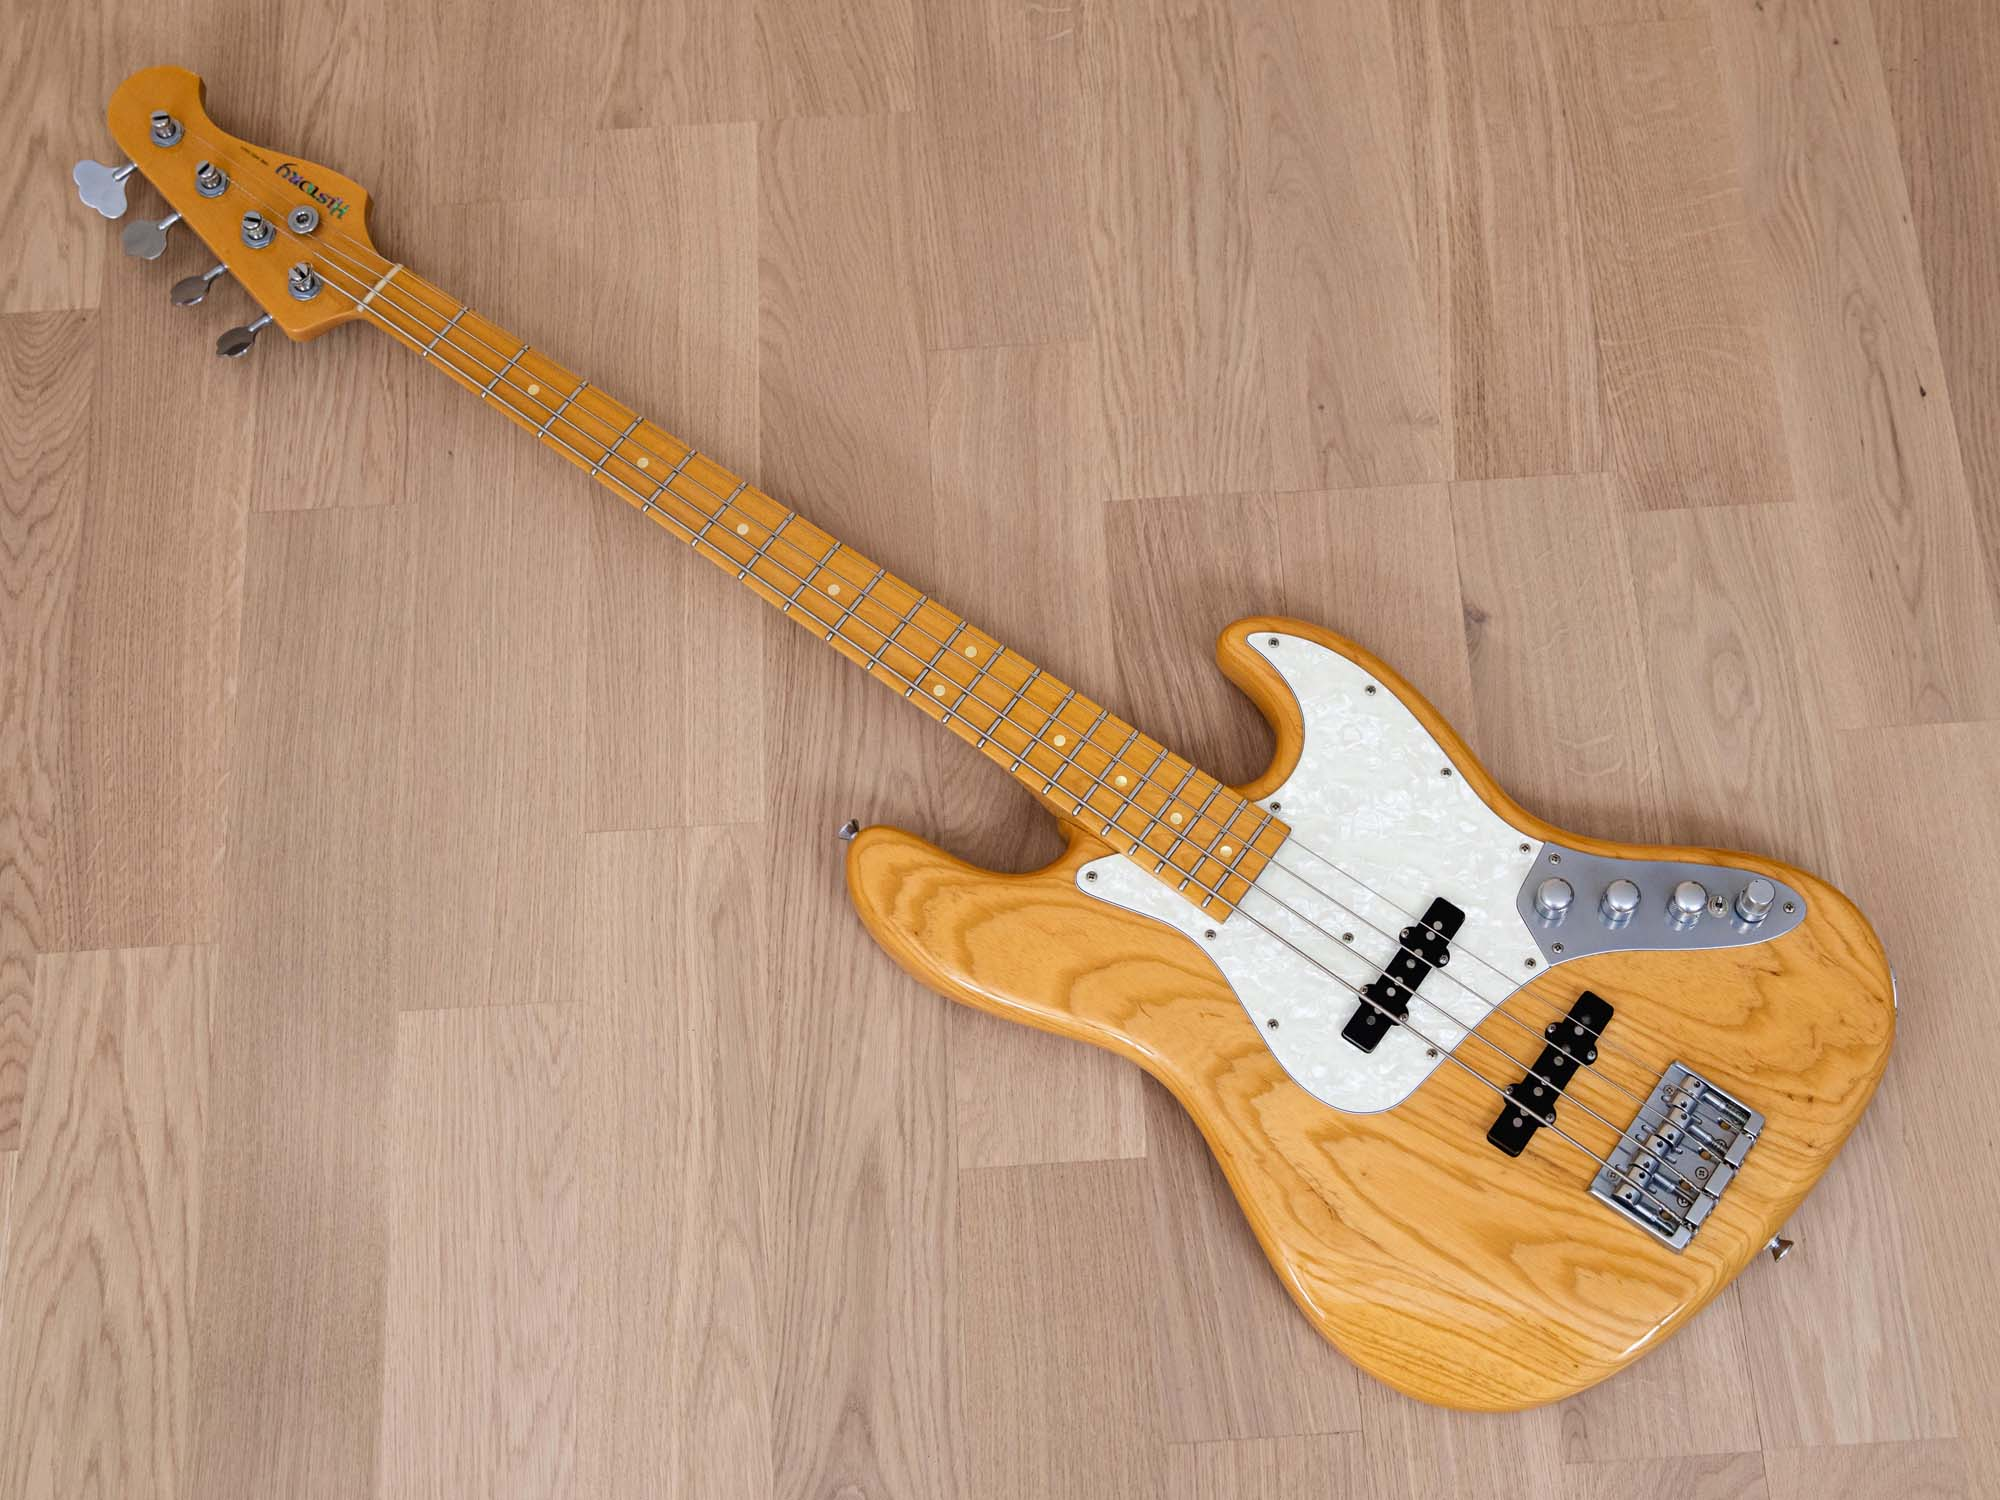 2012 History GH-BJ4A/M Heritage Wood Jazz Bass Natural Ash w/ Aguilar Preamp & Case, Japan Fujigen